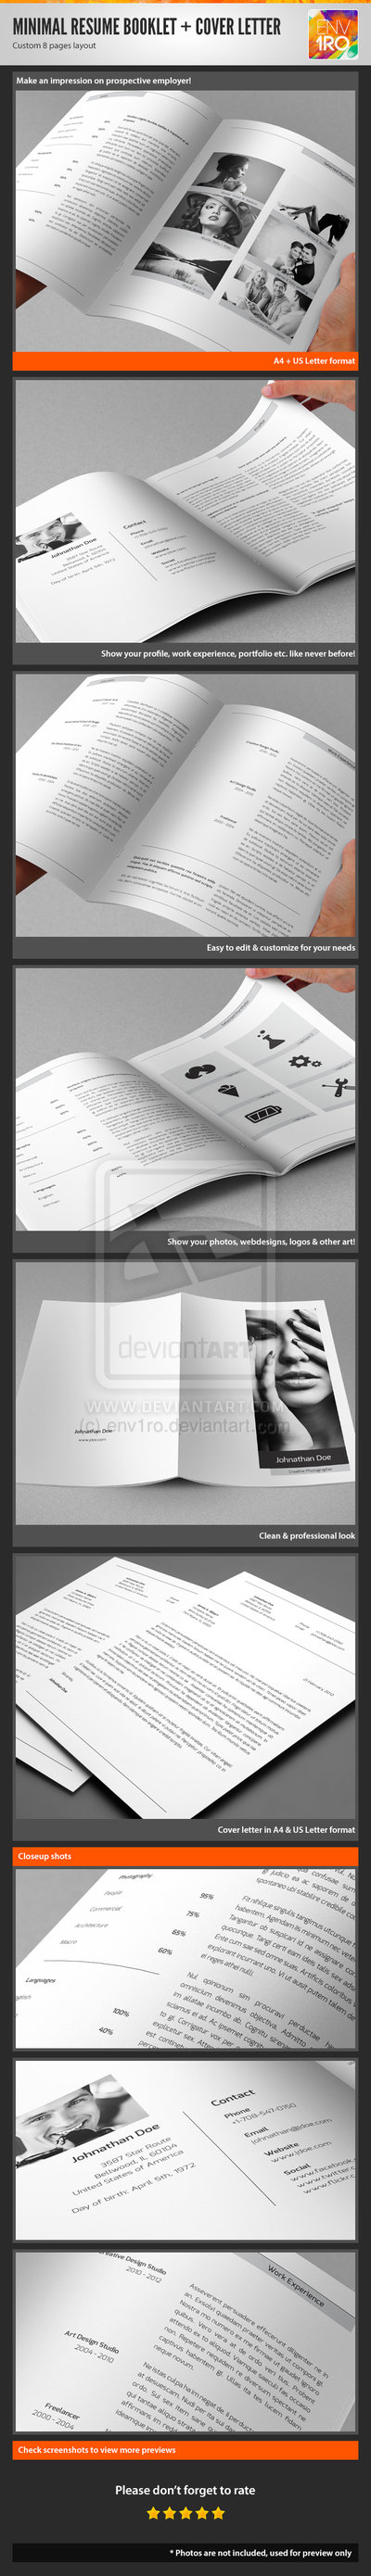 34_Minimal Resume Booklet and Cover Letter